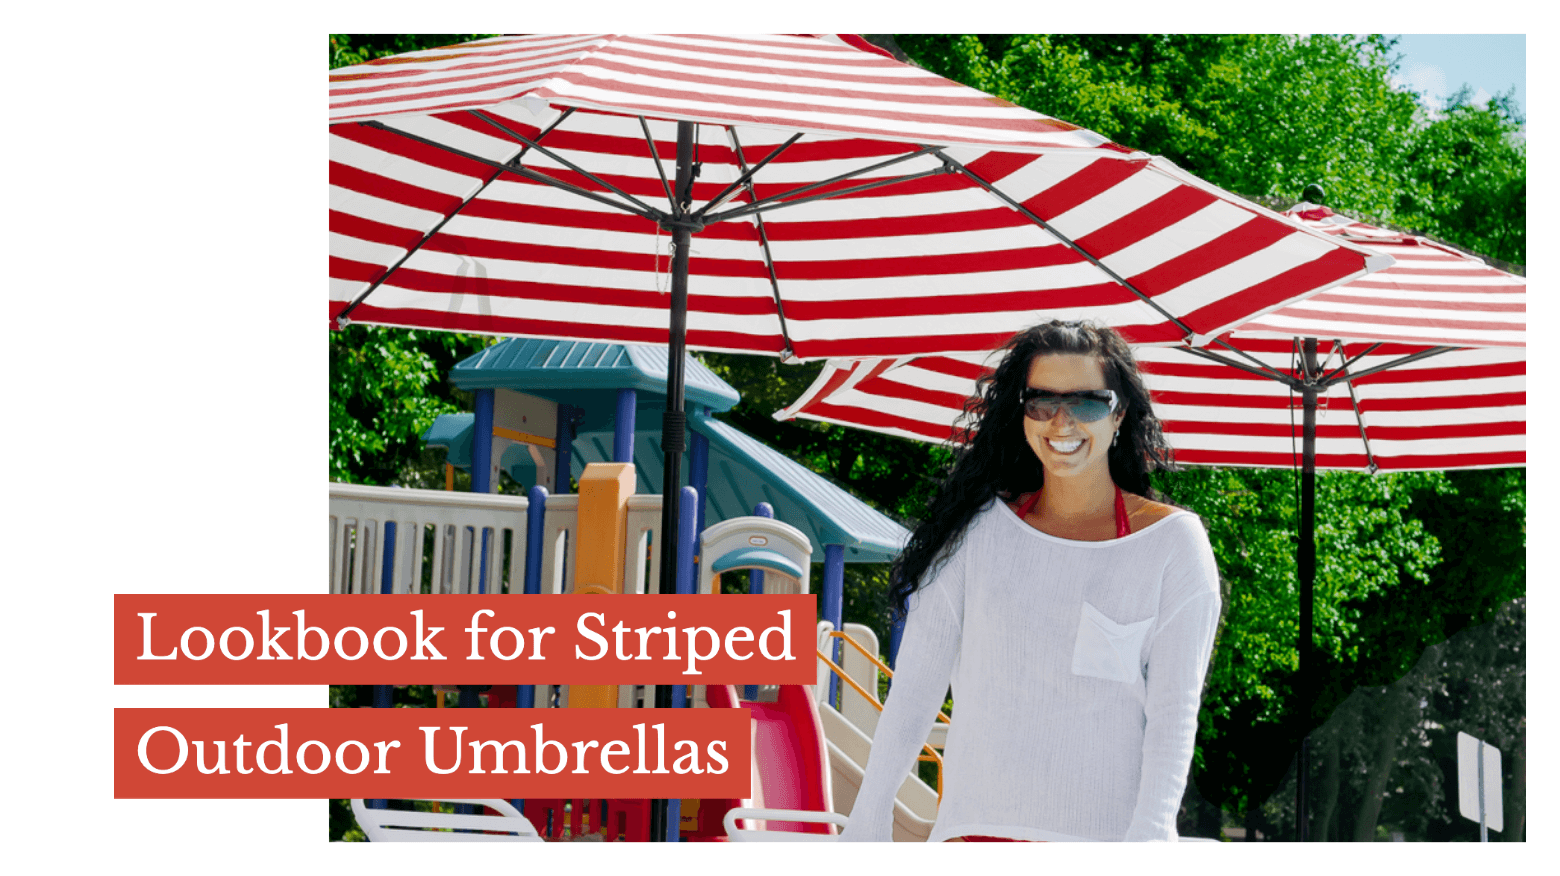 Lookbook for Striped Outdoor Umbrellas